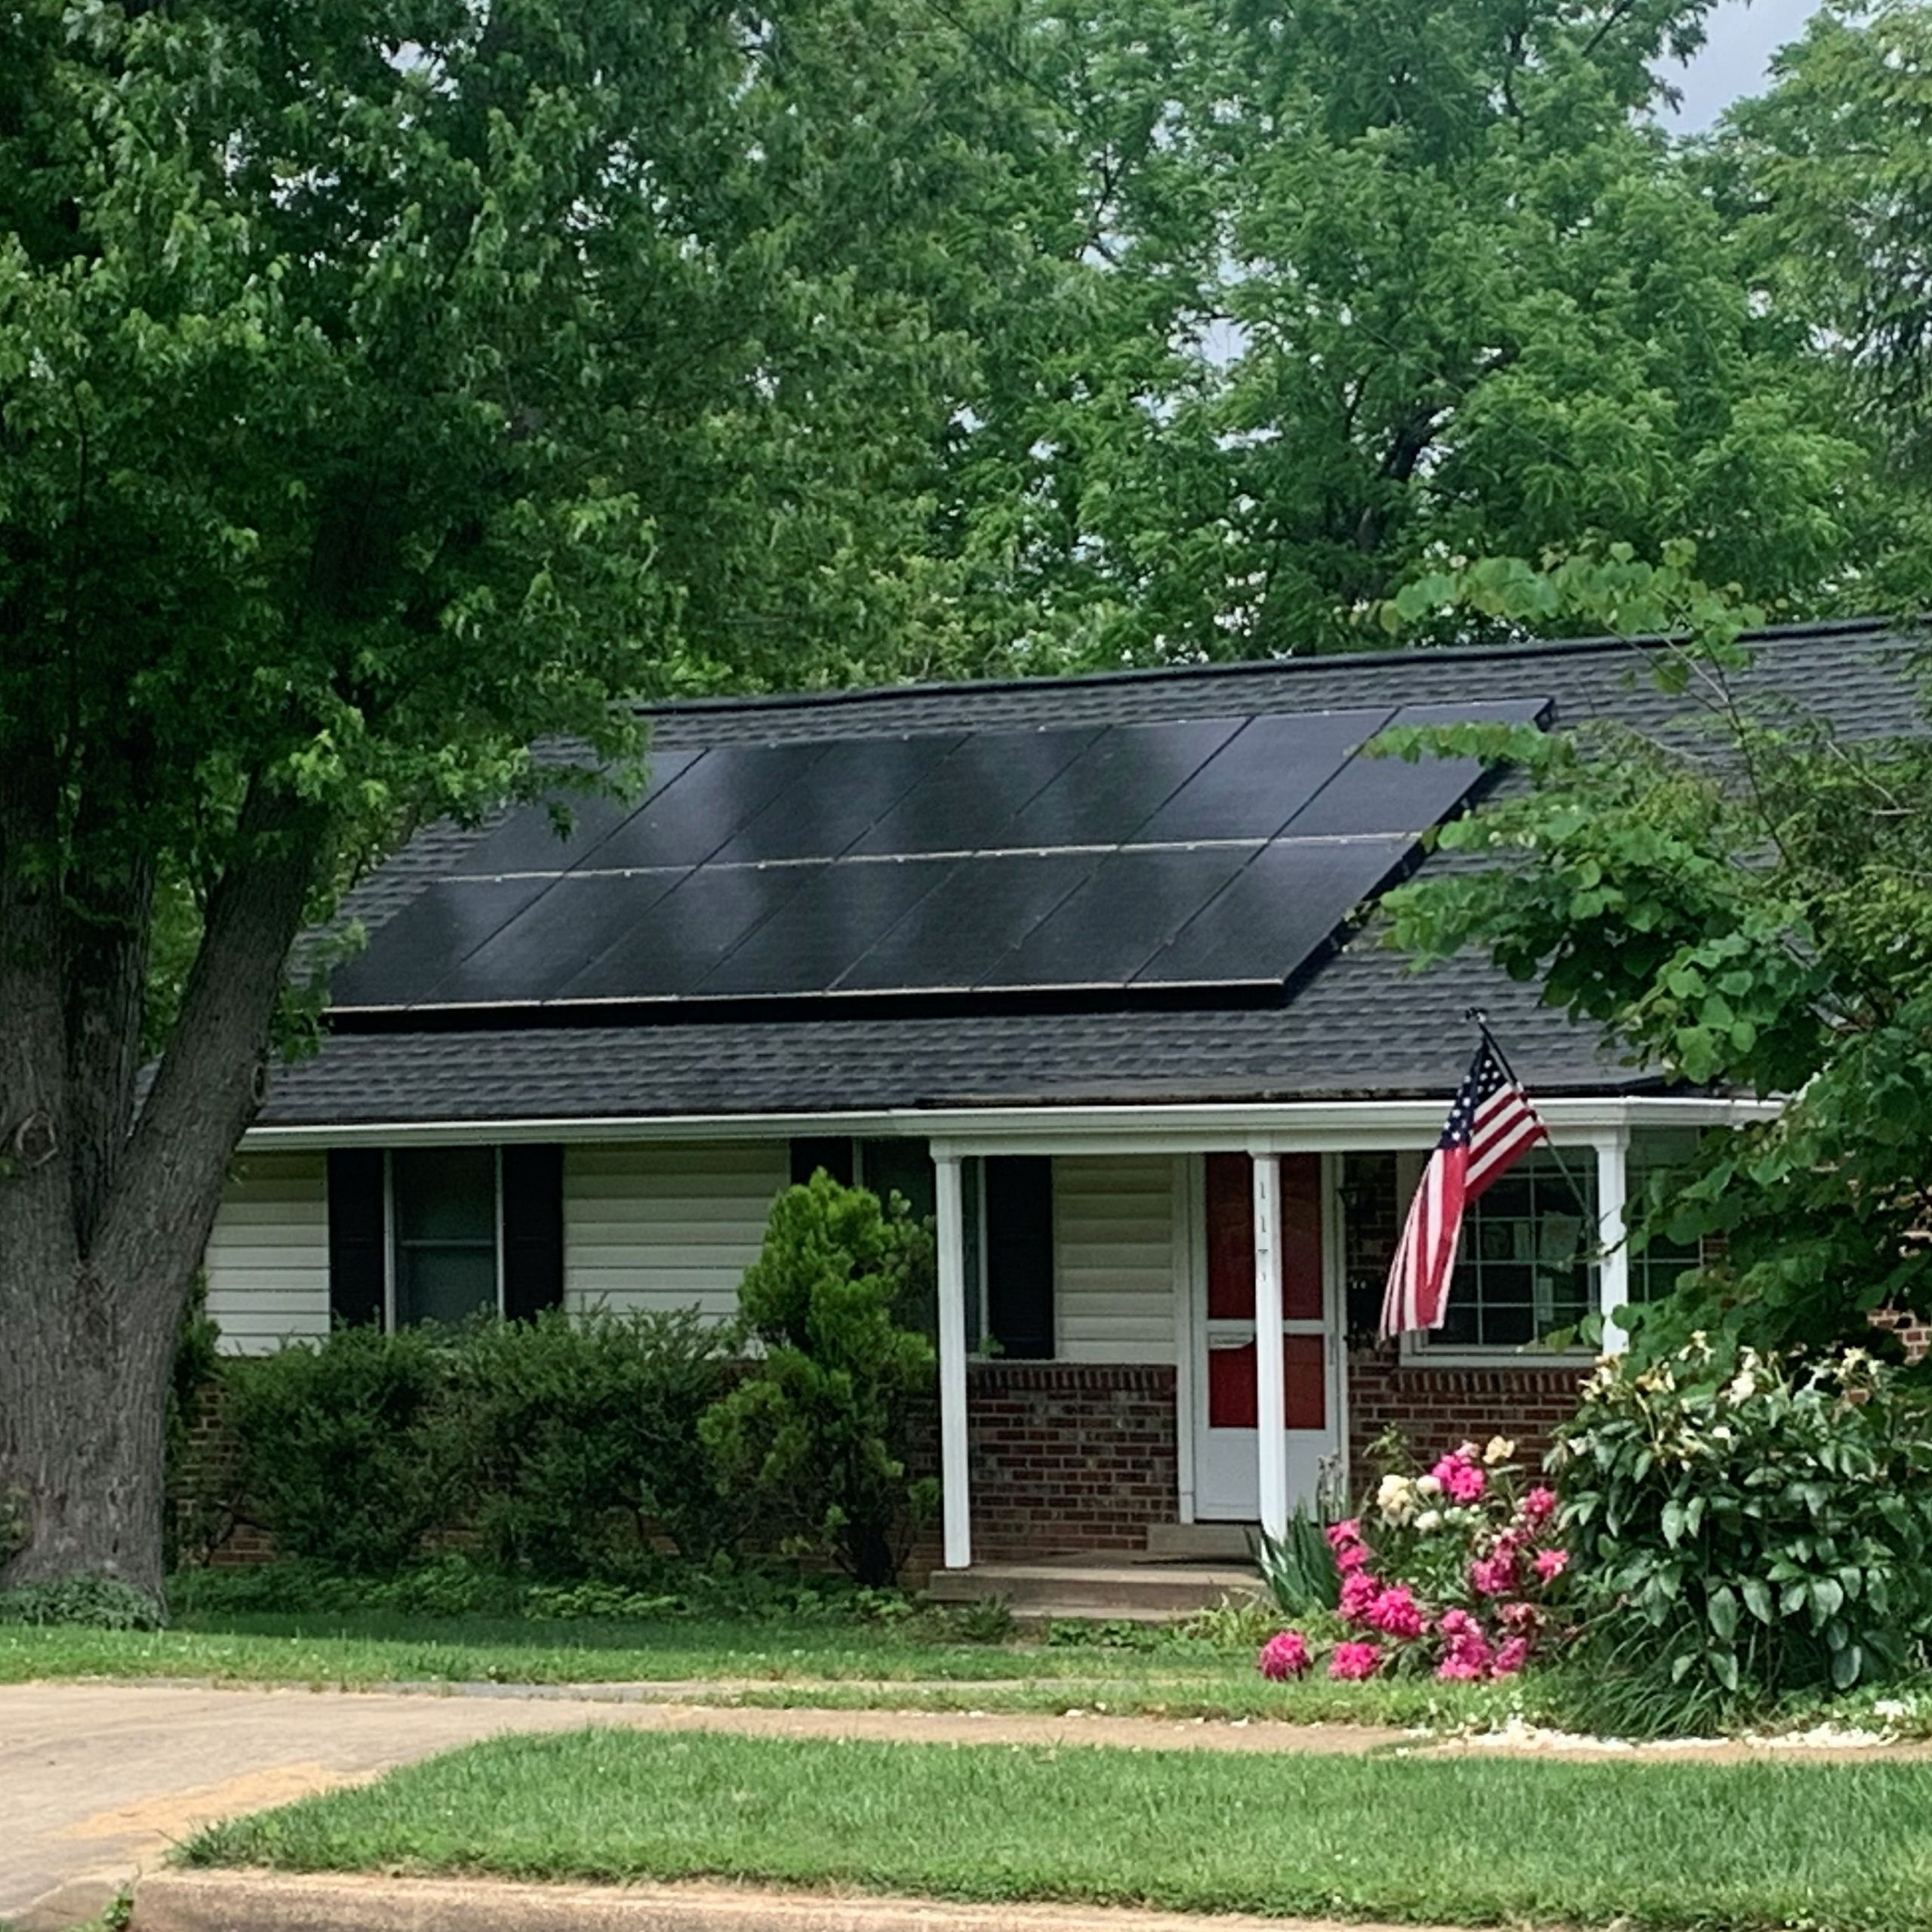 Falls Church VA solar home